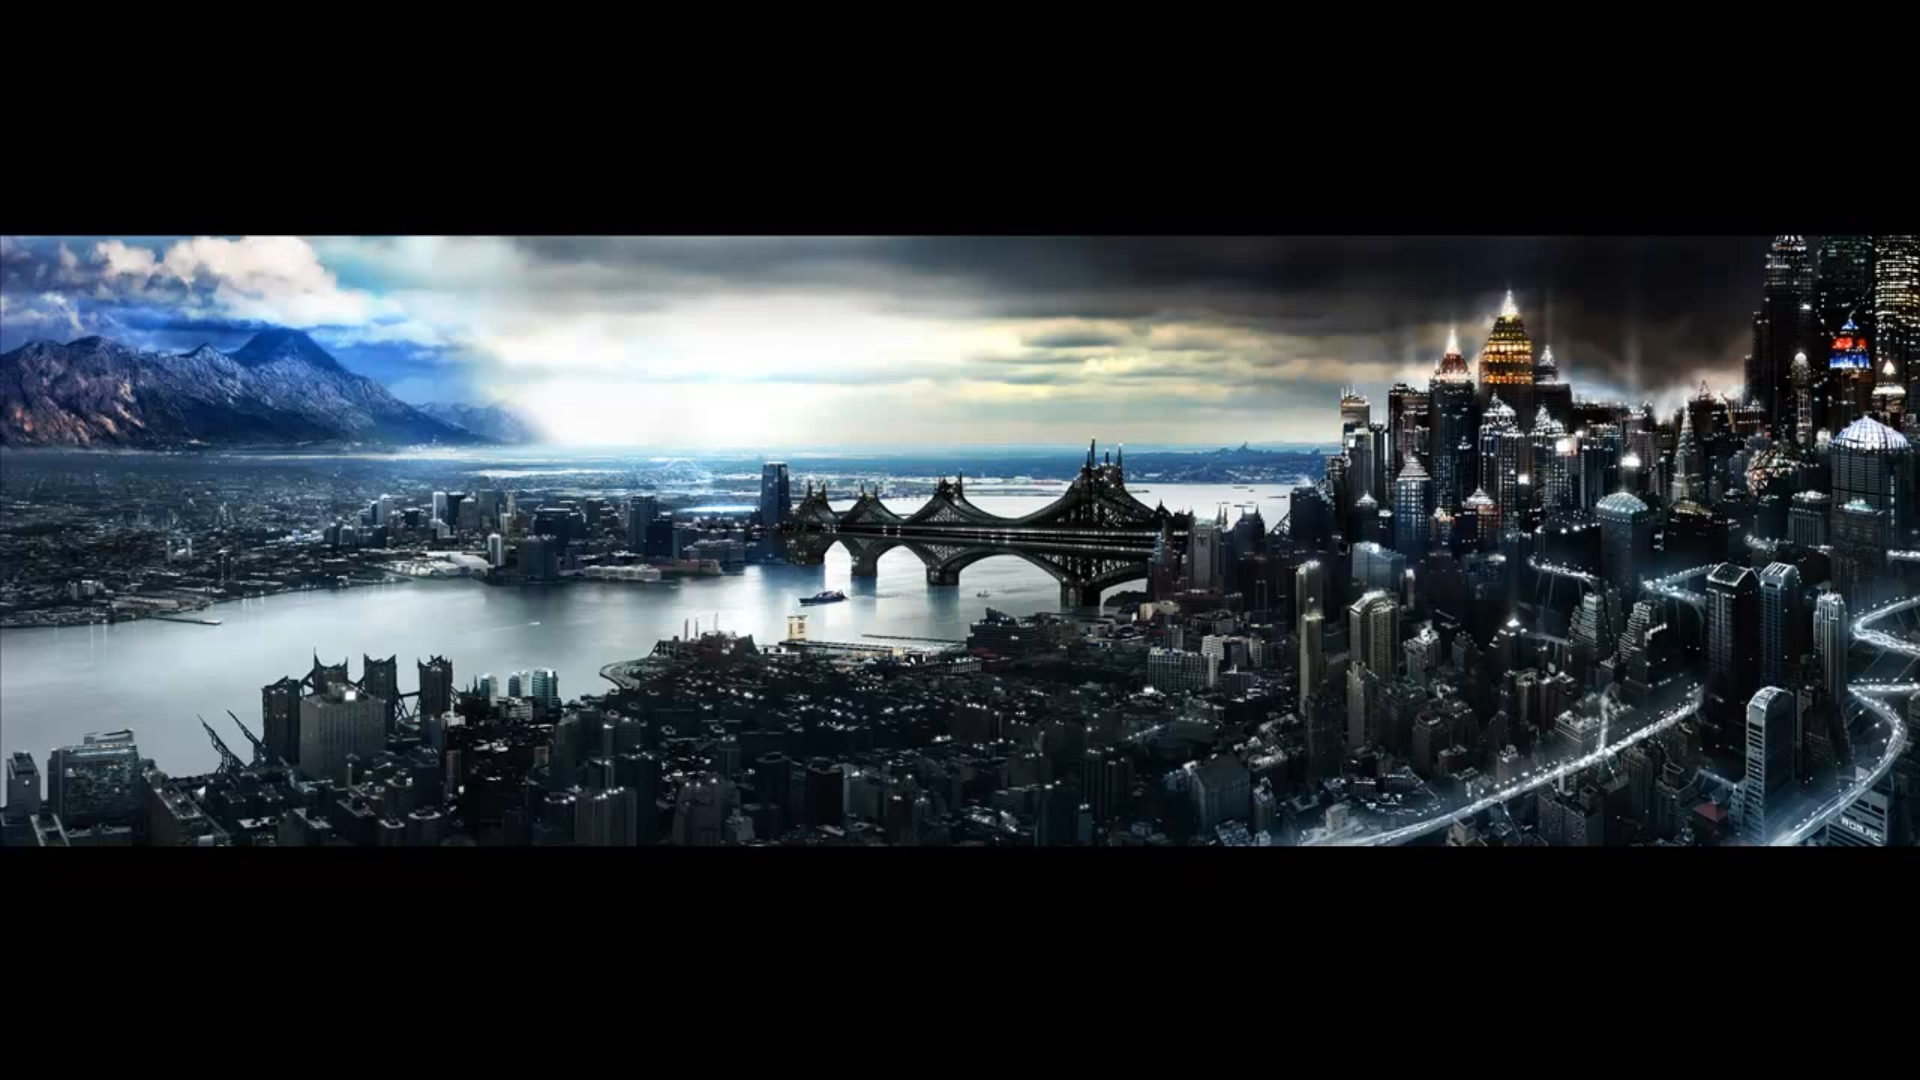 Futuristic City Wallpaper 31